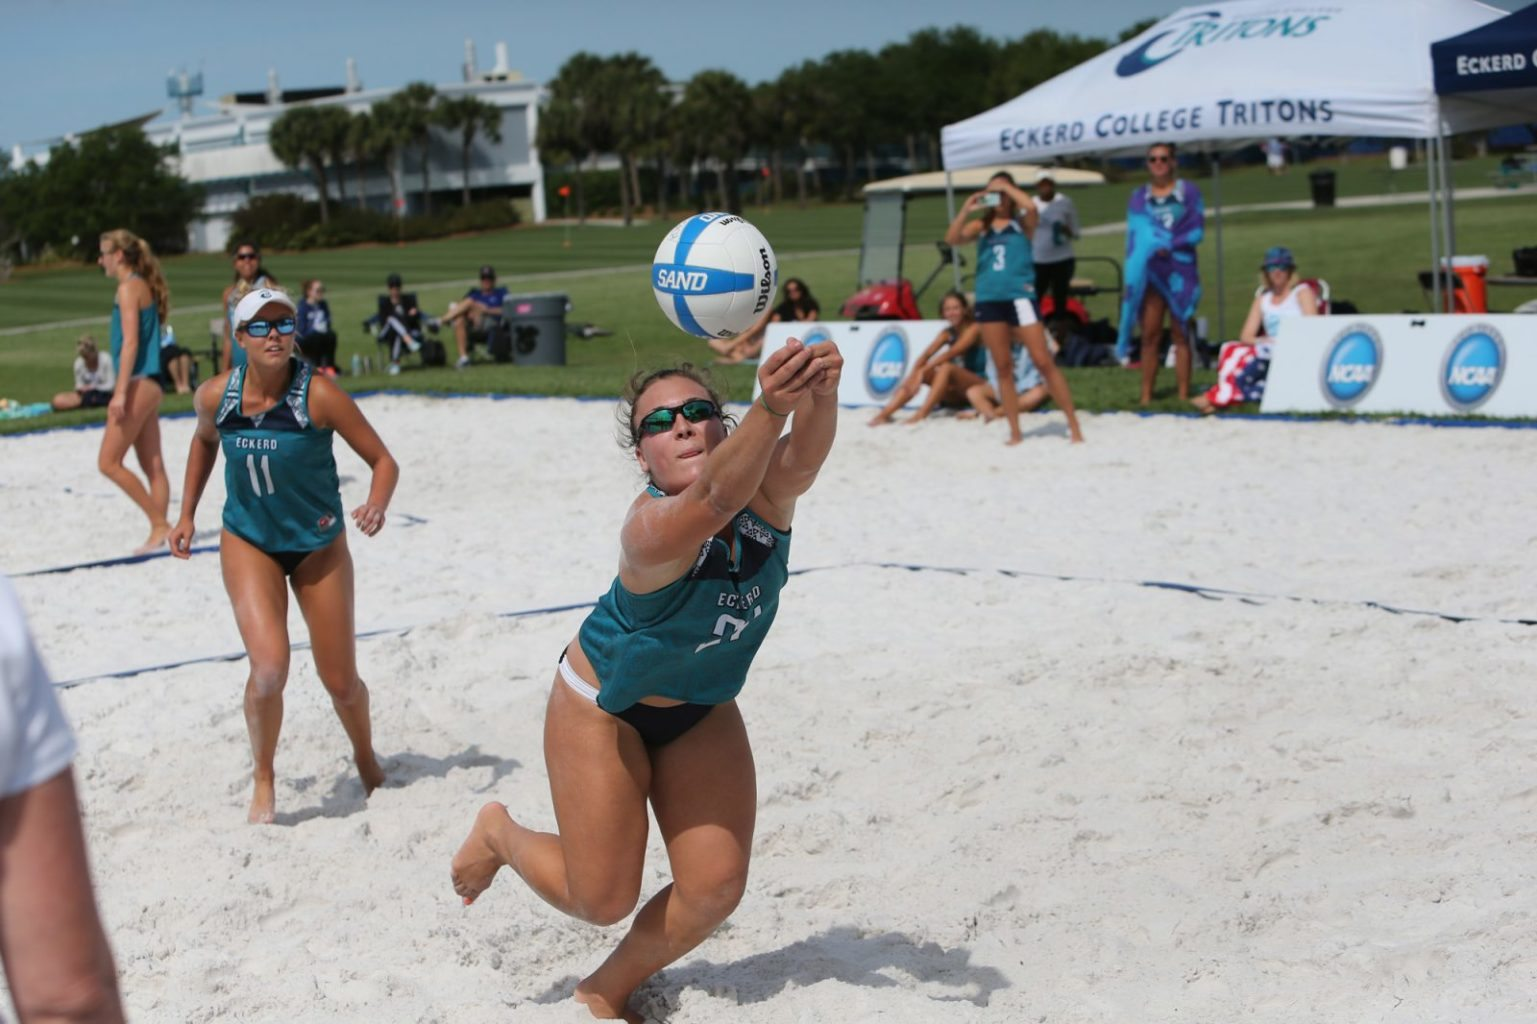 Eckerd College Tritons sand volleyball team playing in a match